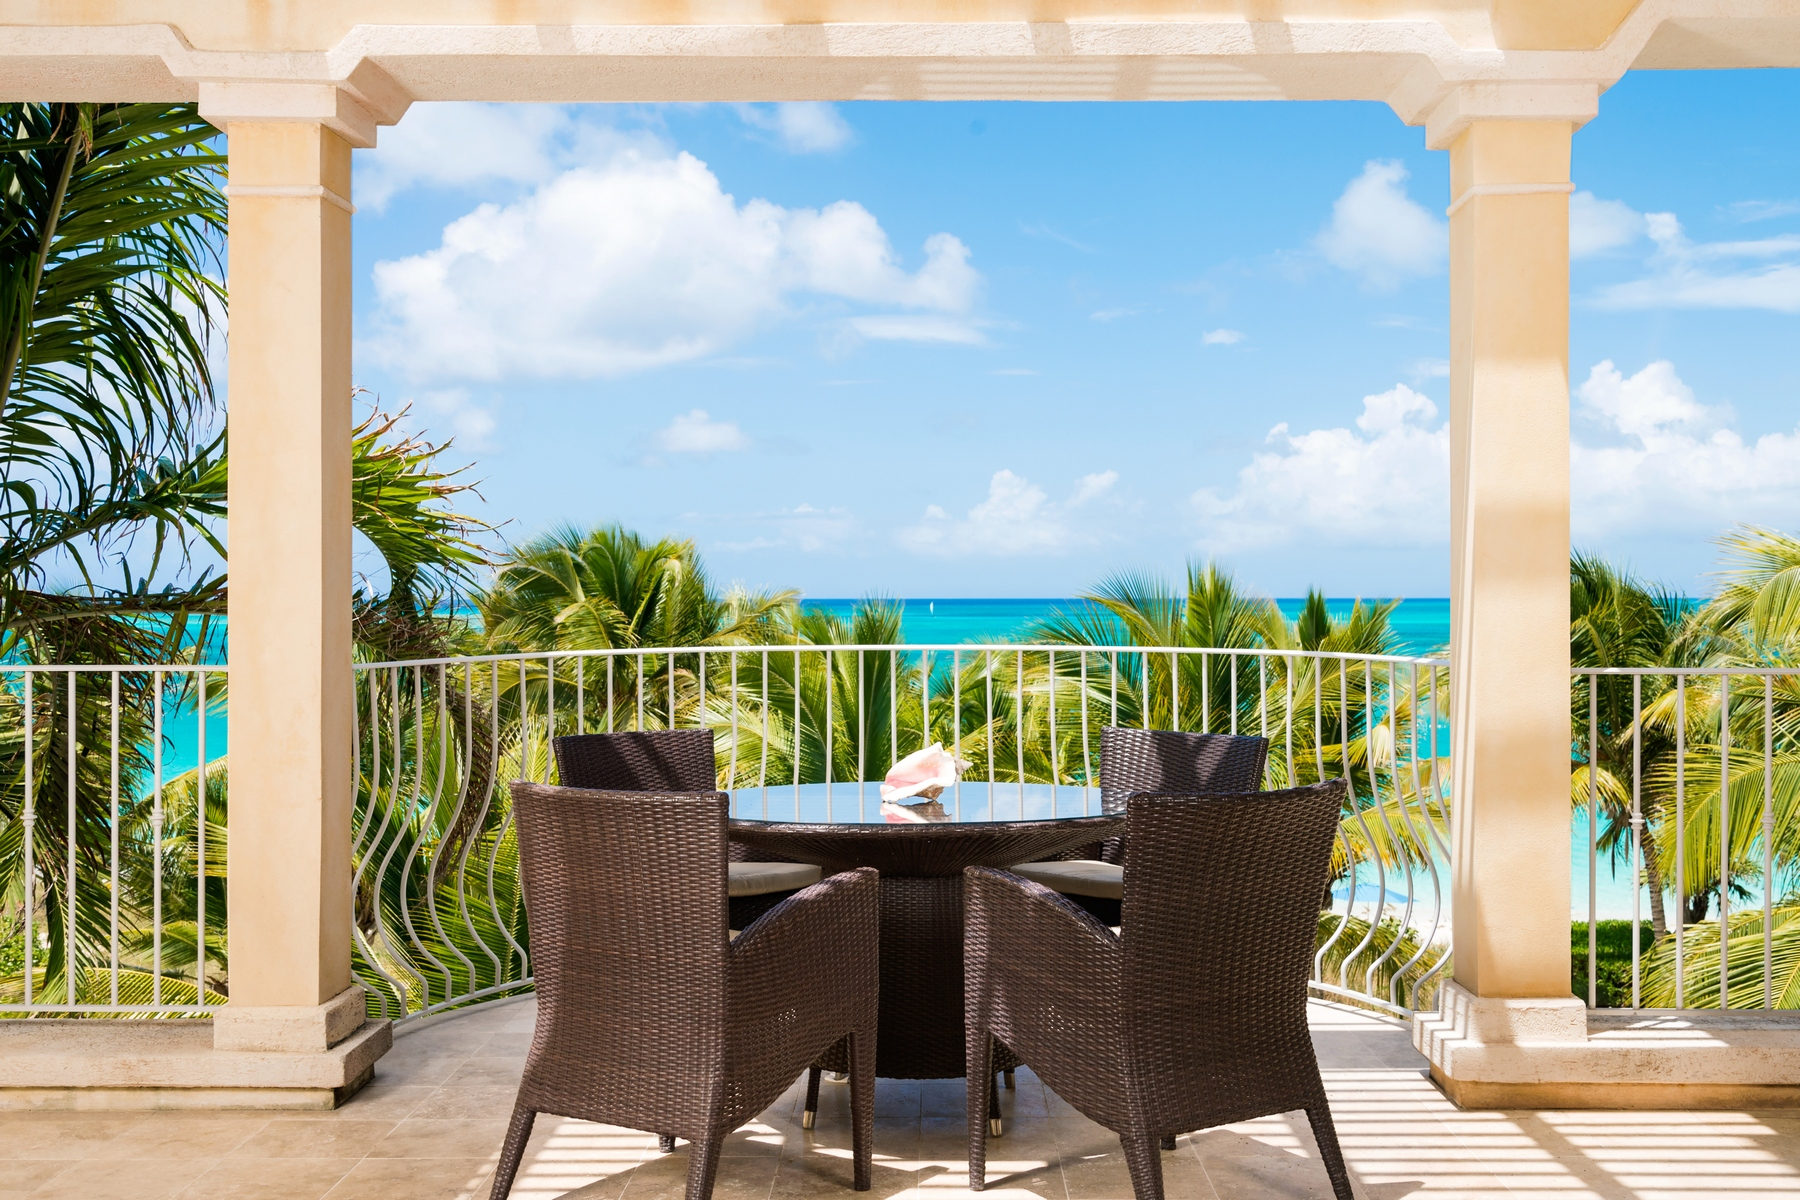 Condominium for Sale at Villa Renaissance ~ Suite 302 Beachfront Grace Bay, Providenciales TCI BWI Turks And Caicos Islands